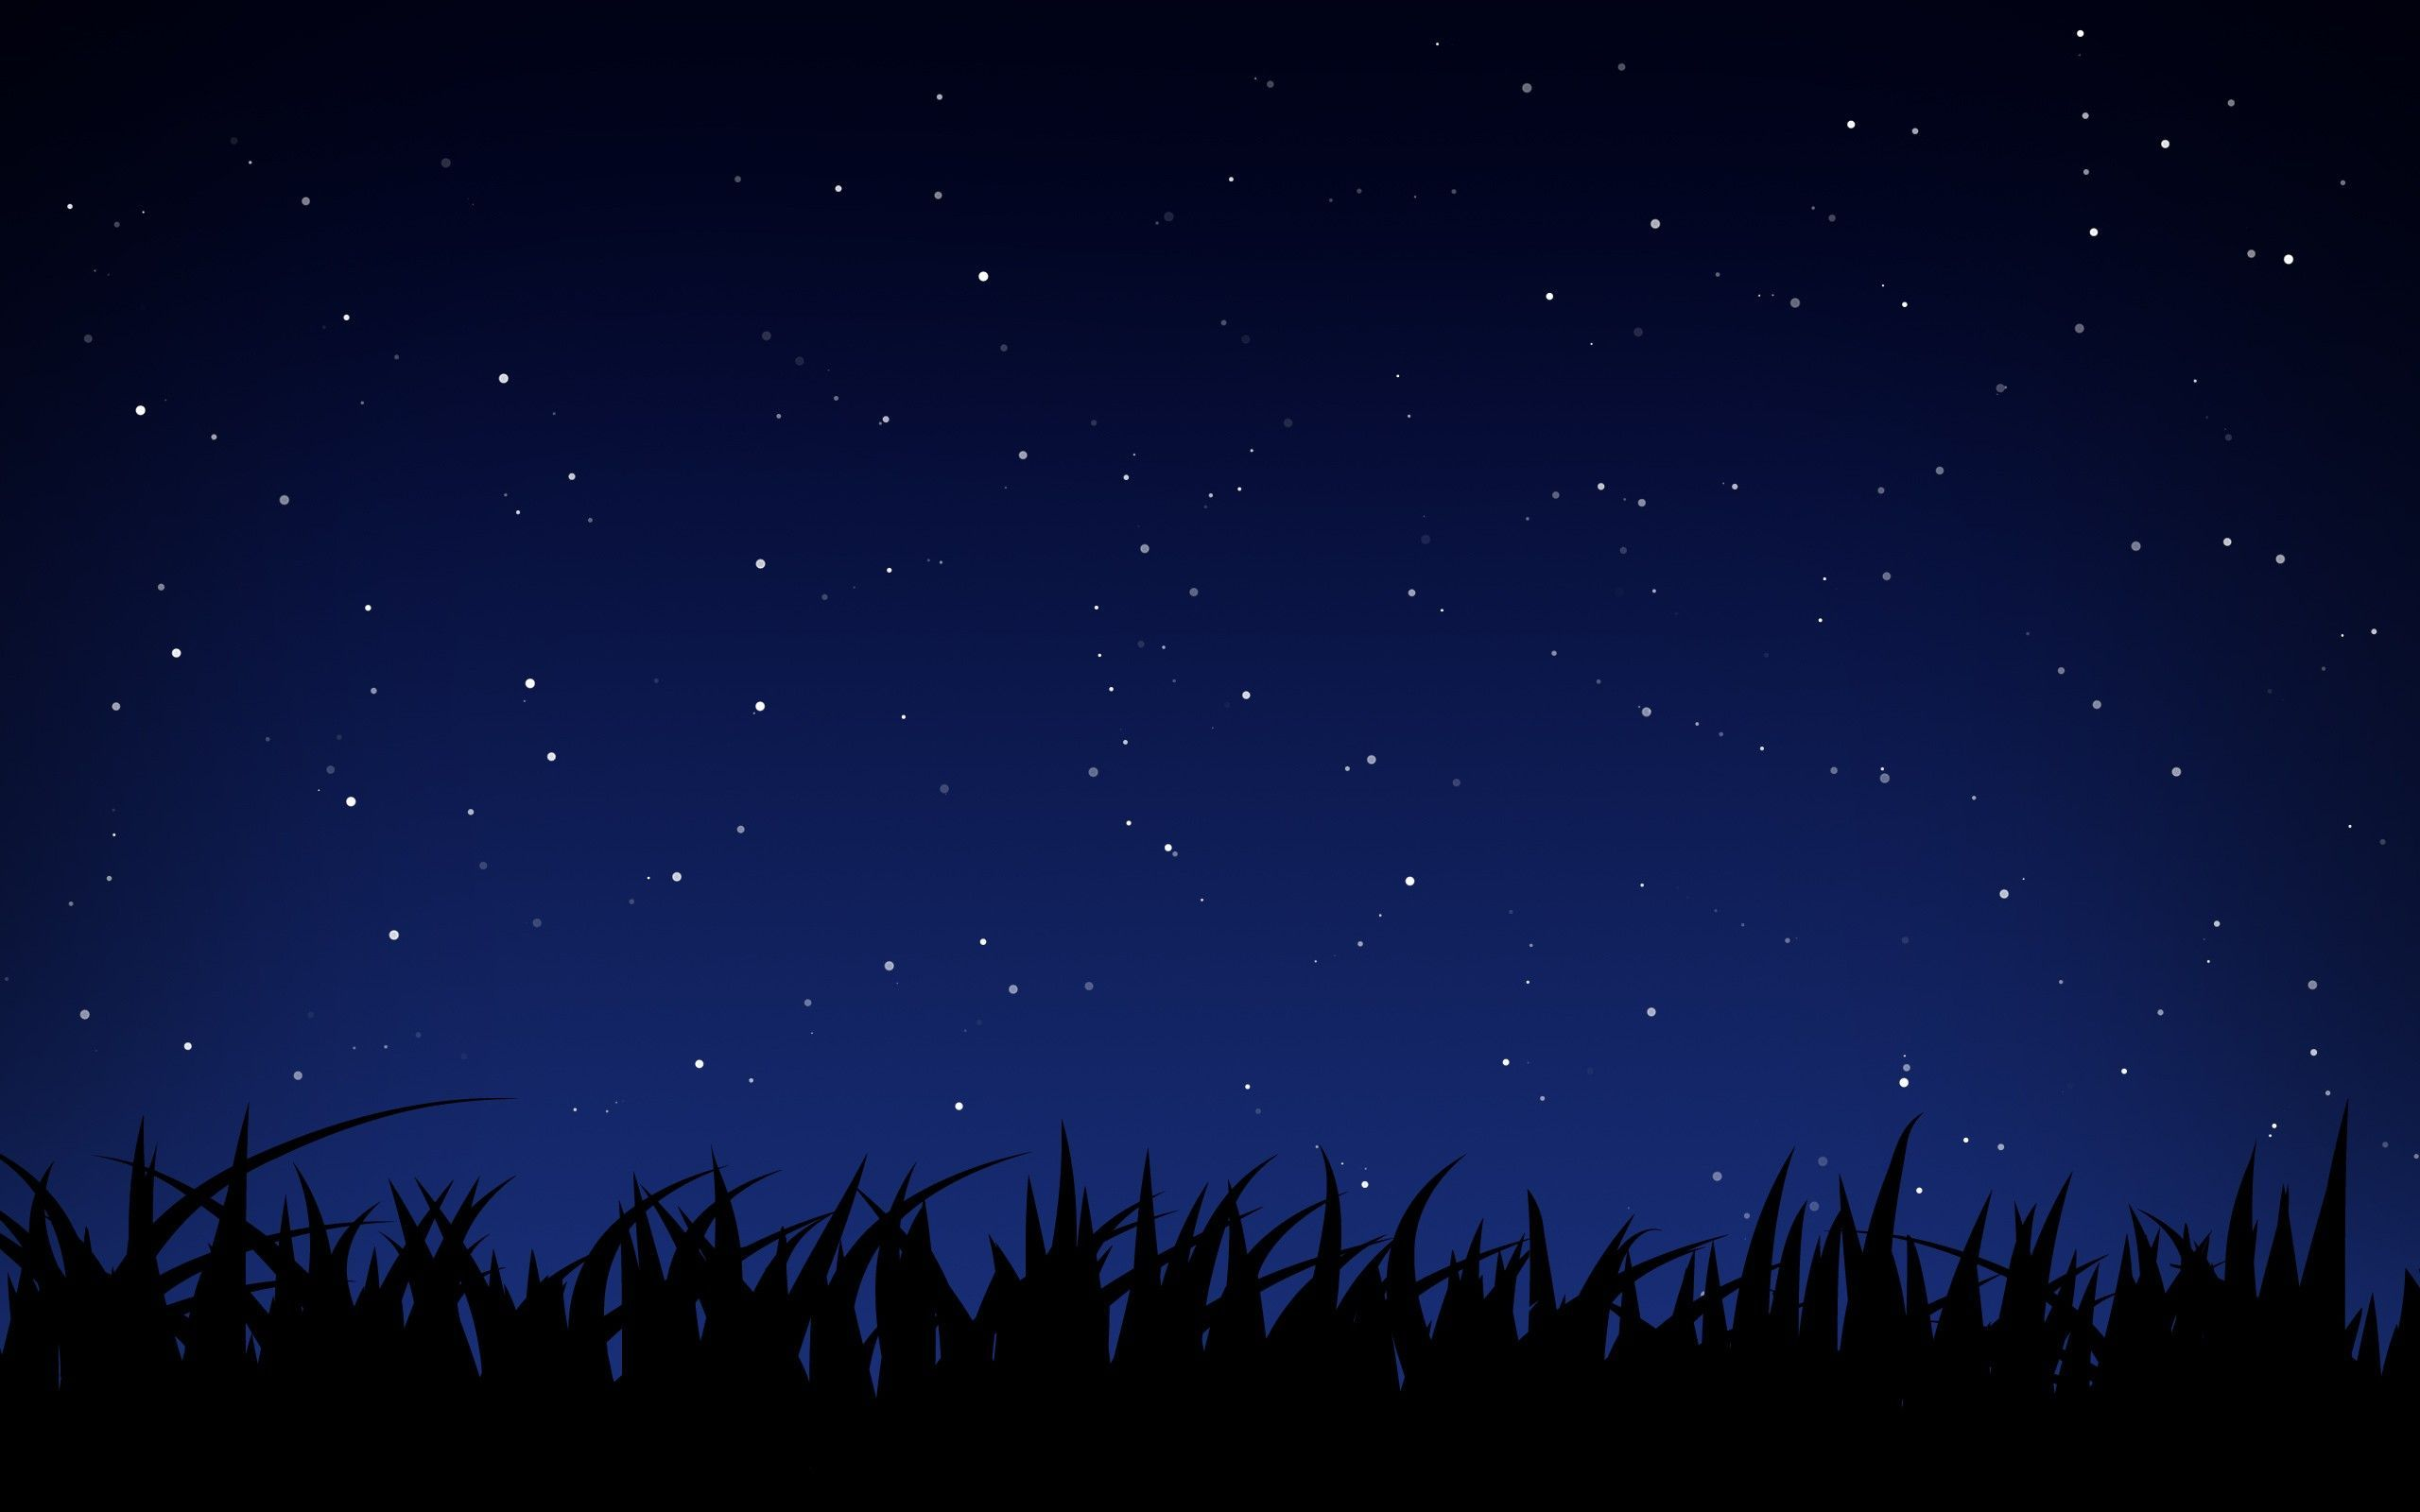 Starry sky clipart free clipart black and white download Anime Starry Night Sky Wallpapers Phone For Free Wallpaper ... clipart black and white download